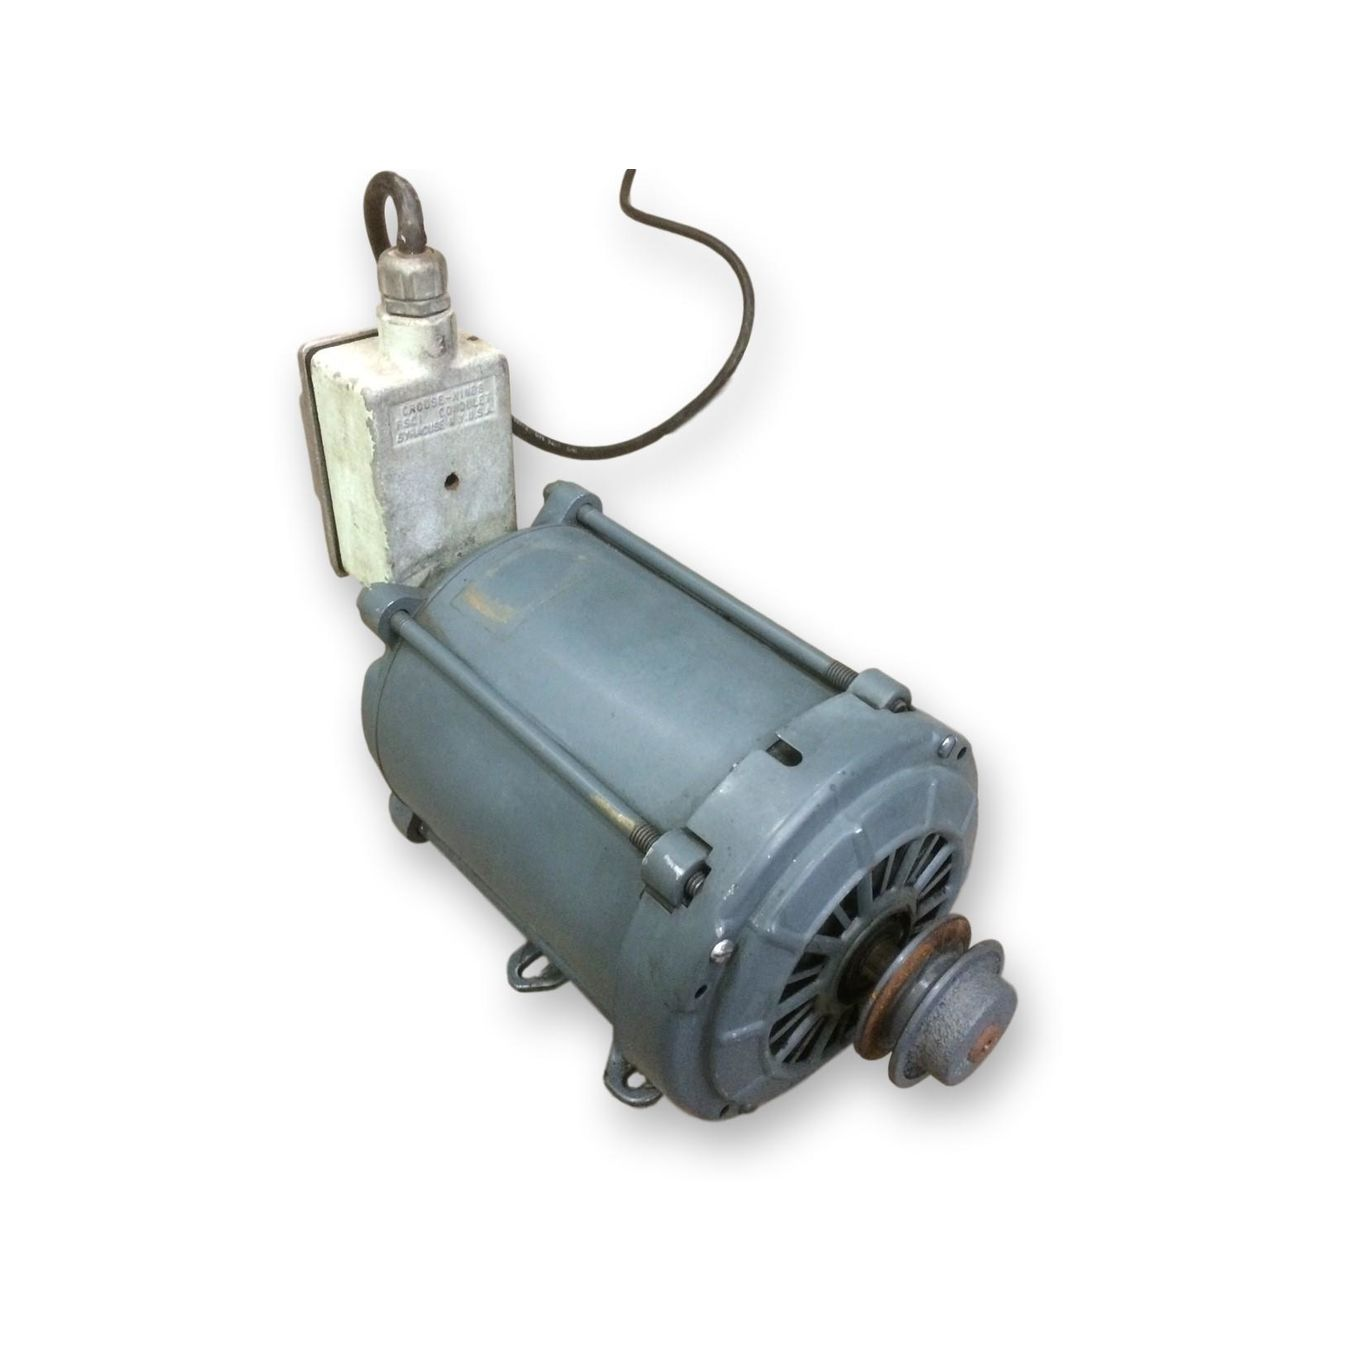 Used 1  3 Hp General Electric Motor  1725 Rpm  115  230 Volt Single Phase 56 Frame For Sale